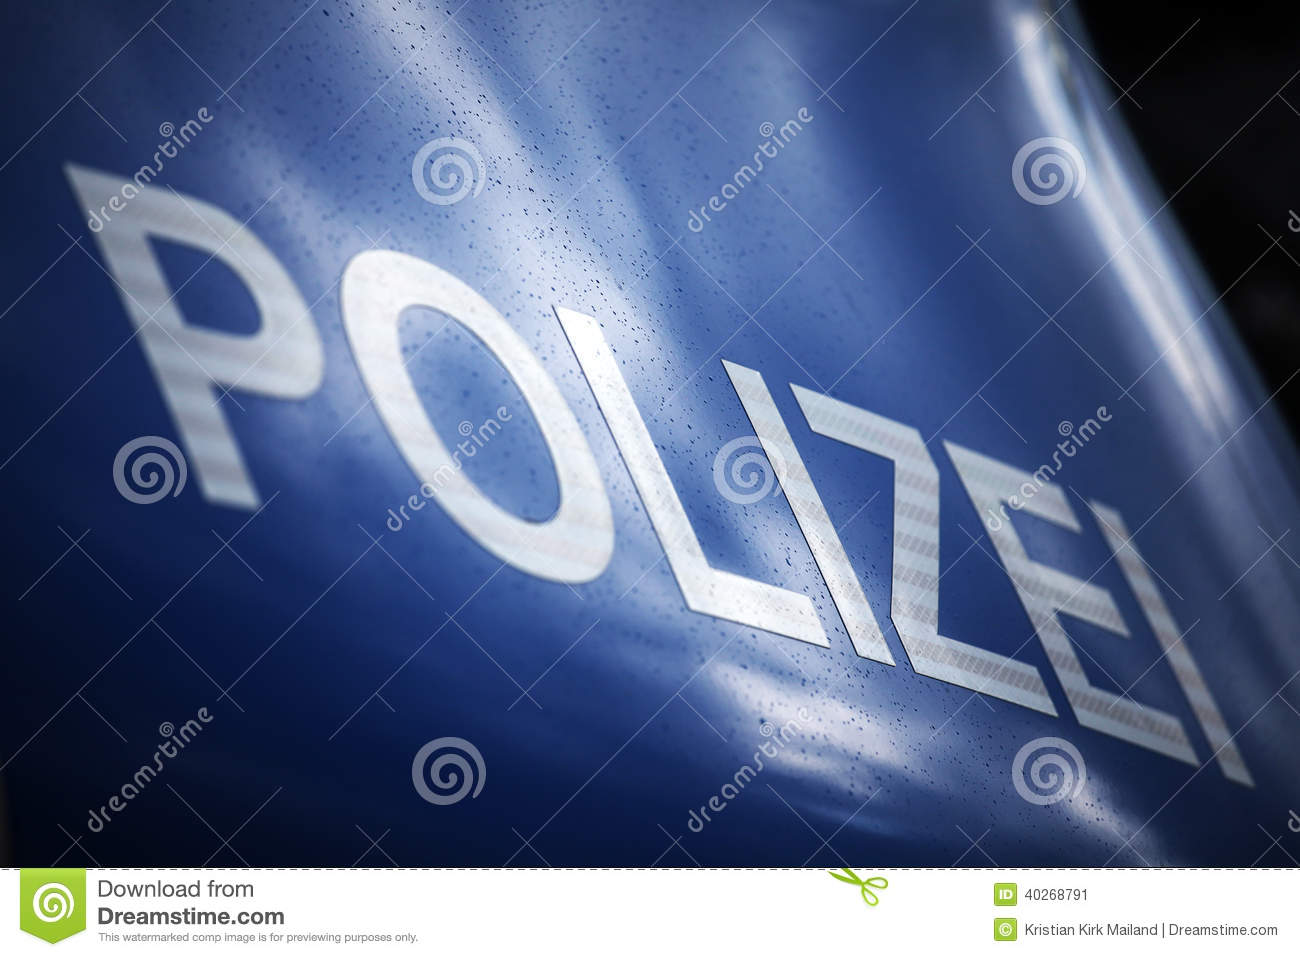 German police, polizei